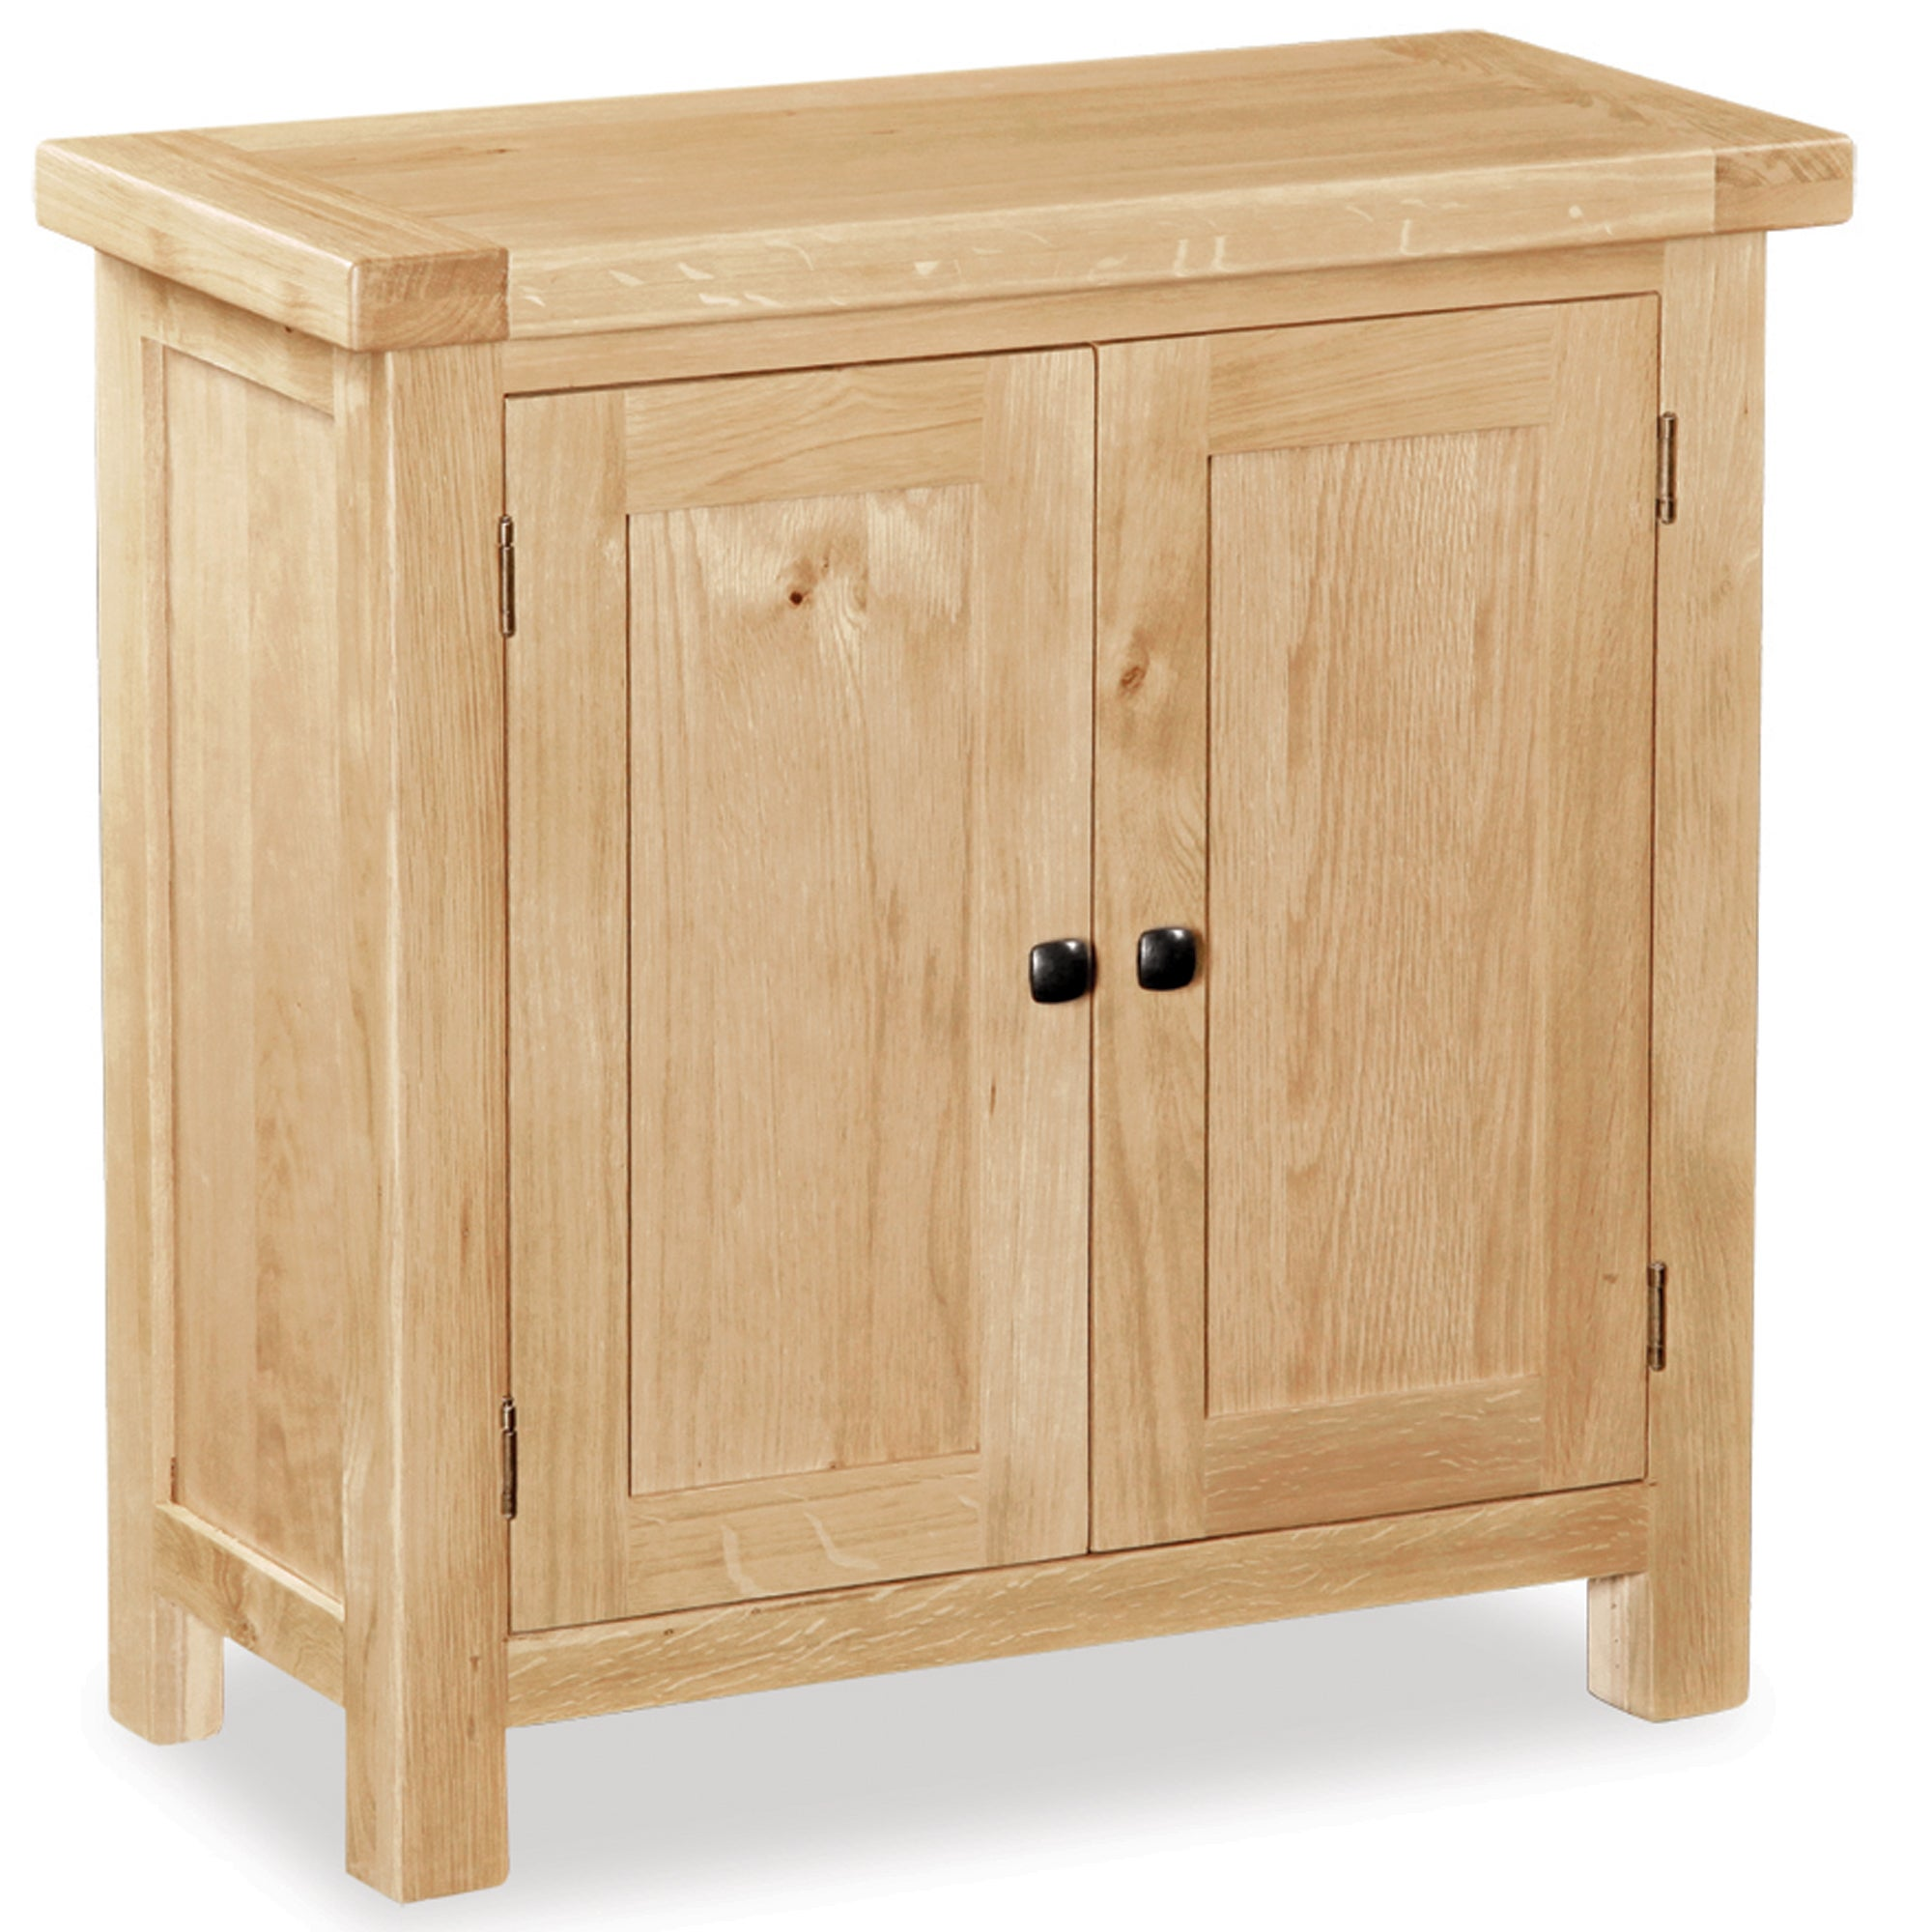 Harrogate Oak Mini Cupboard